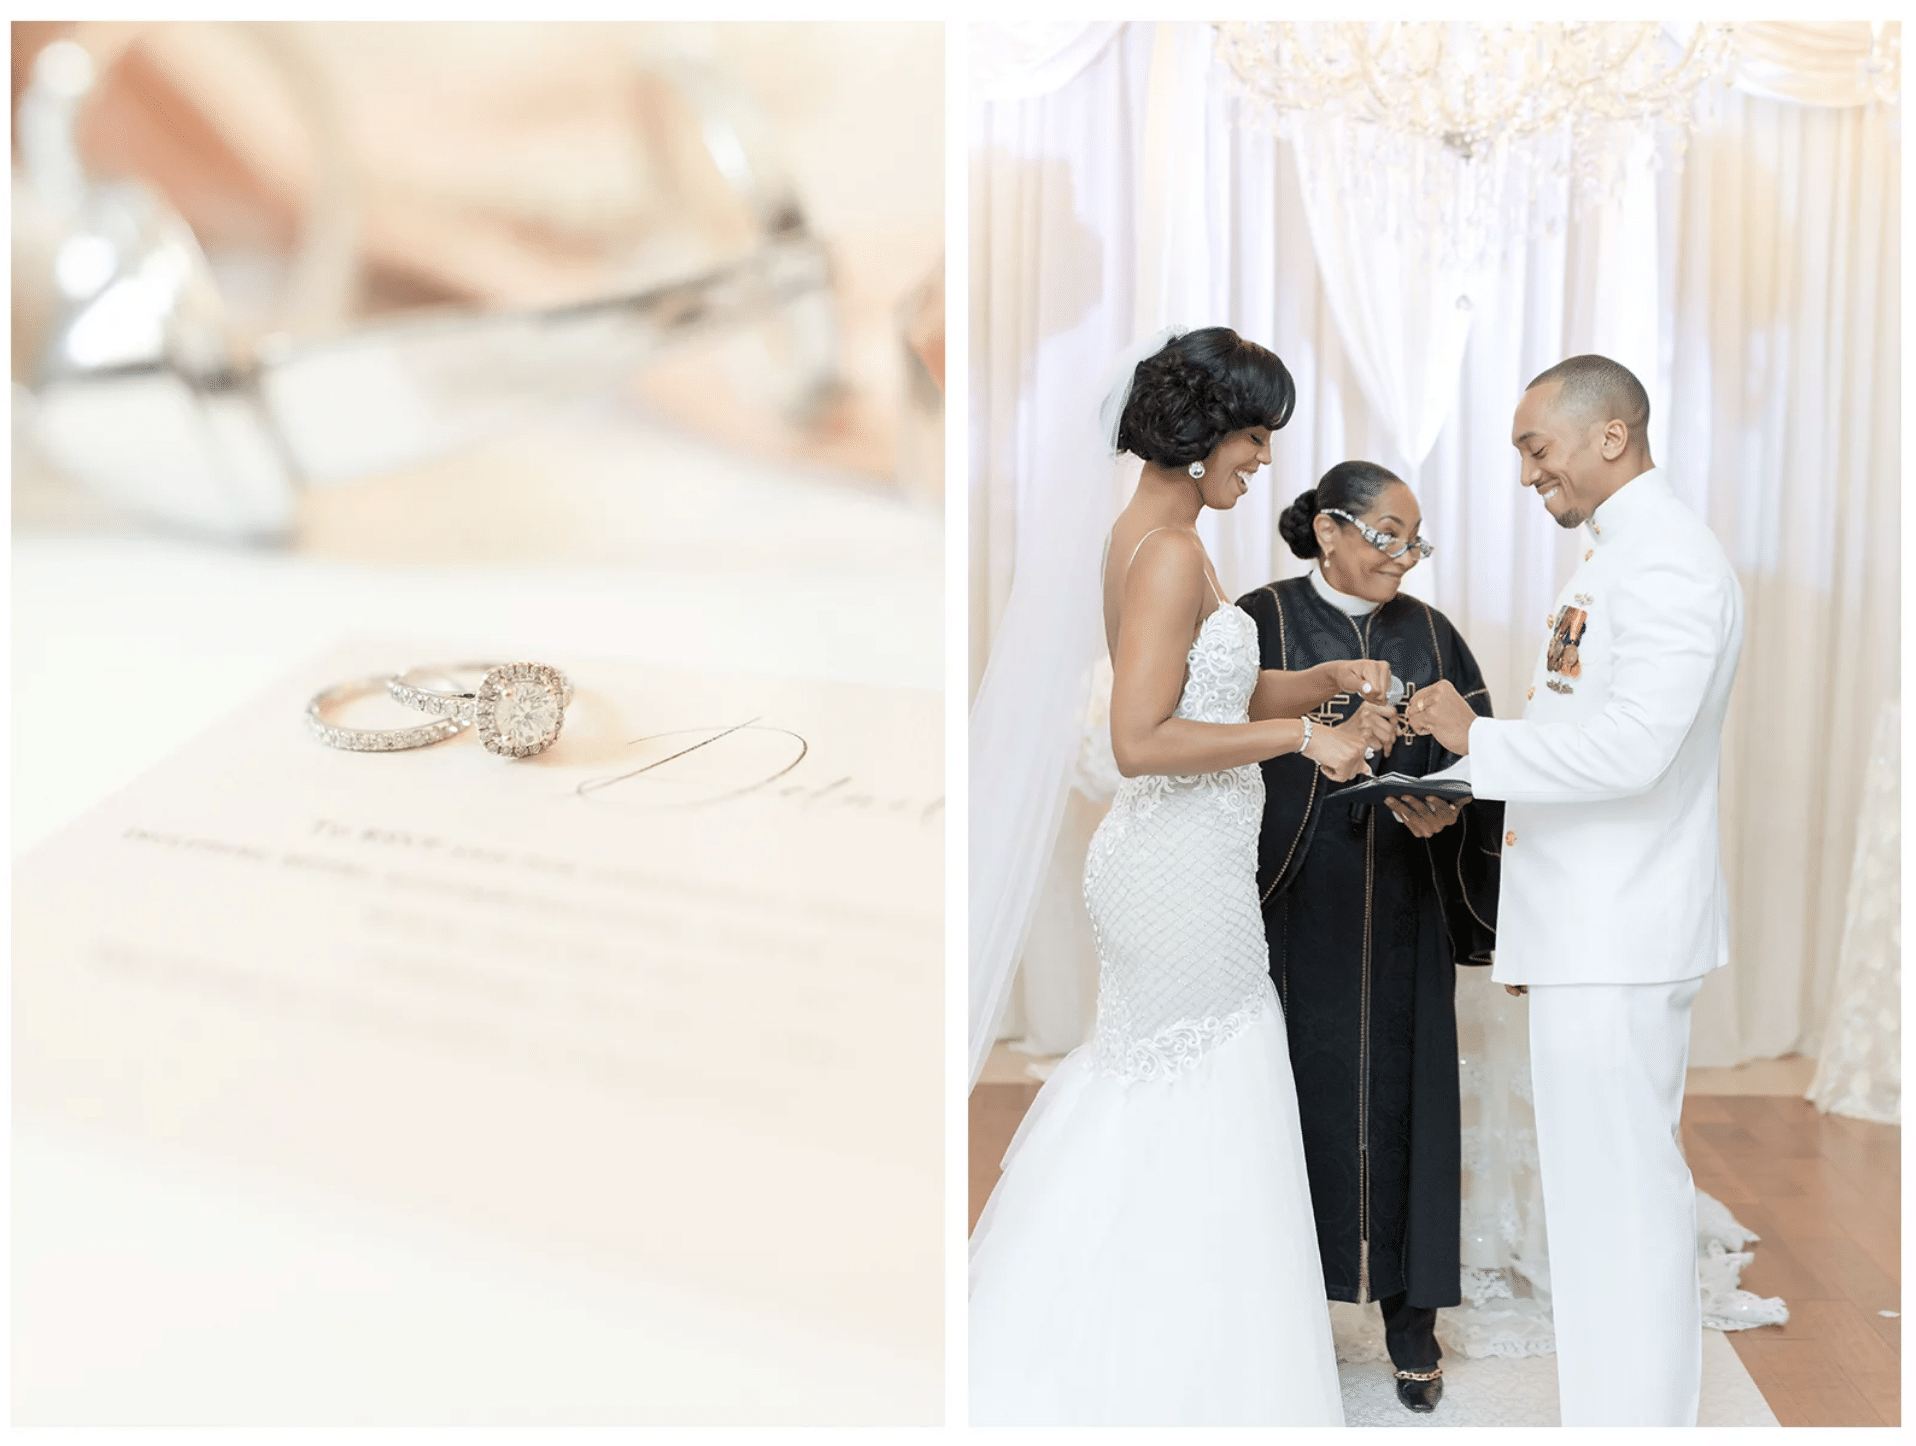 closeup of rings and exchanging rings at ceremony